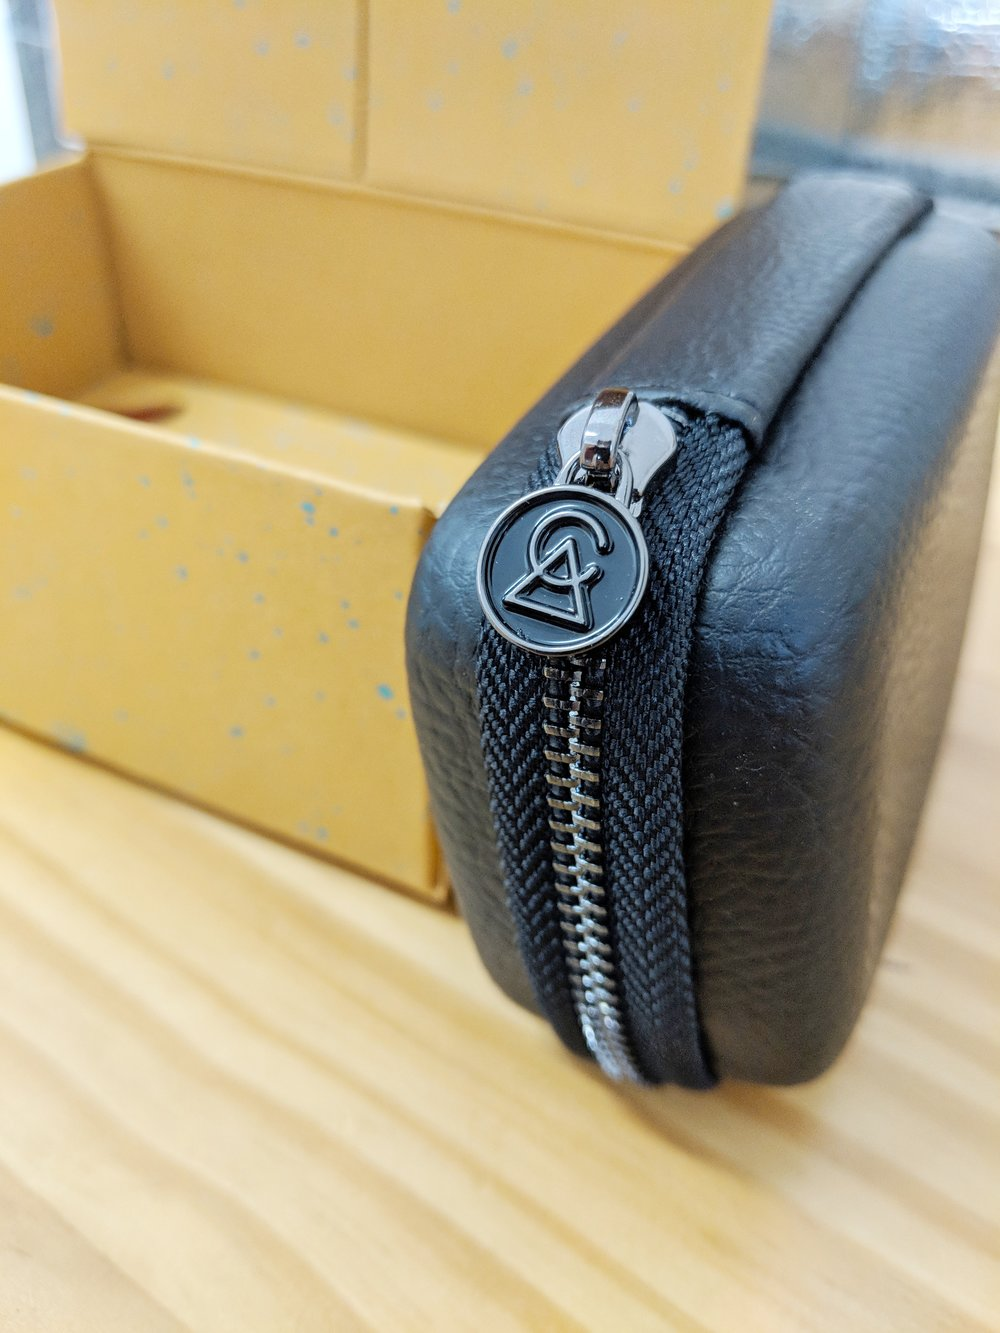 Carry case and packaging for the Campfire Audio Comet.